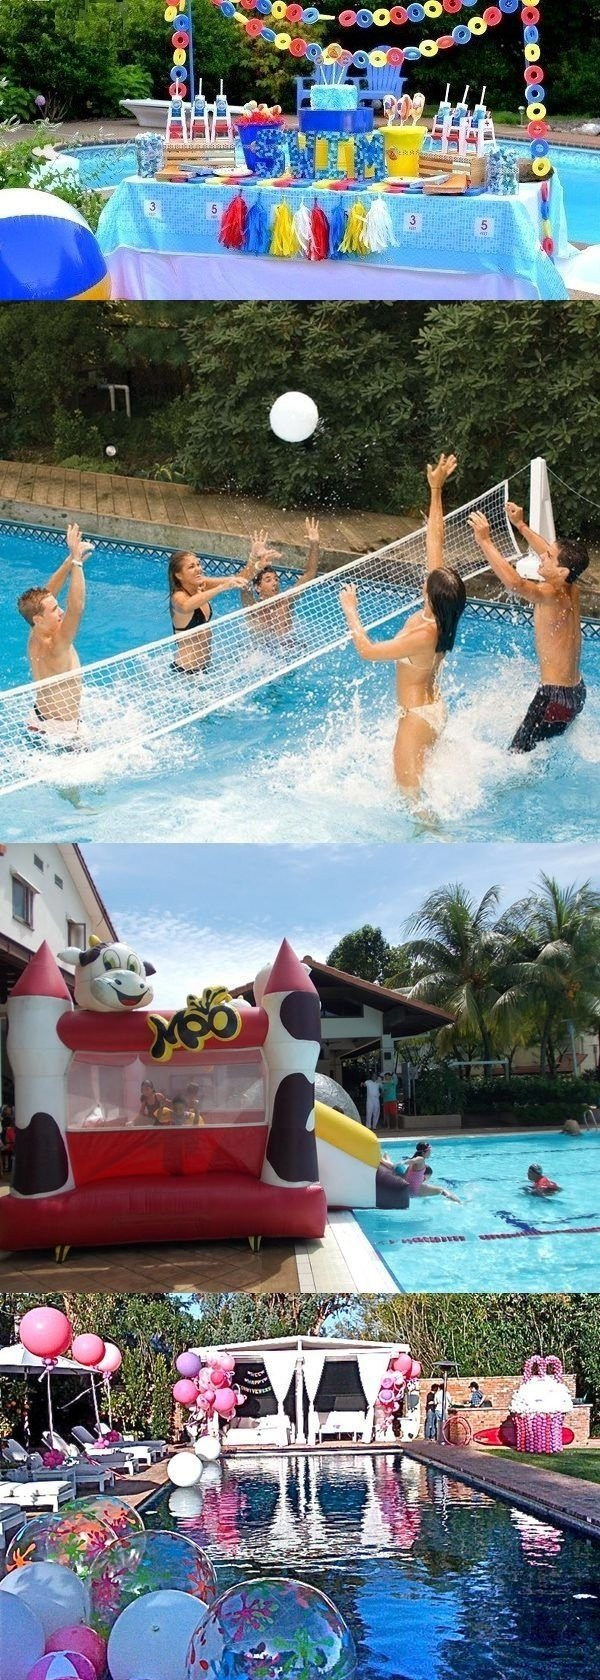 10 Most Popular Pool Party Ideas For Tweens 4 amazing ideas for teens pool party teen pool parties birthday 1